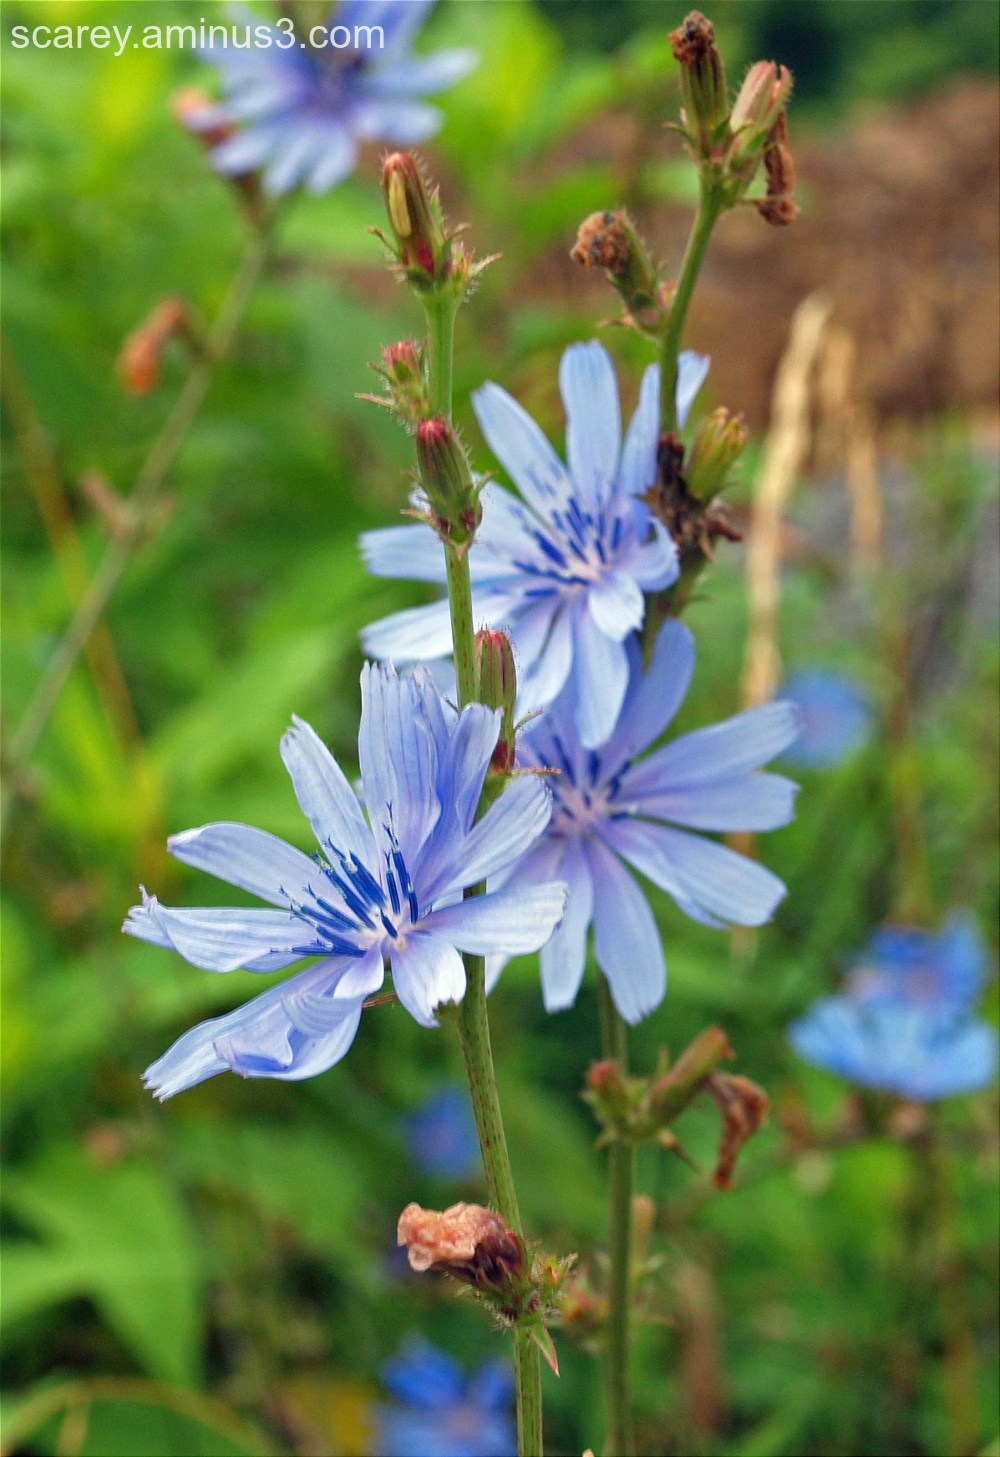 Chicory flowers along real roadside in WV